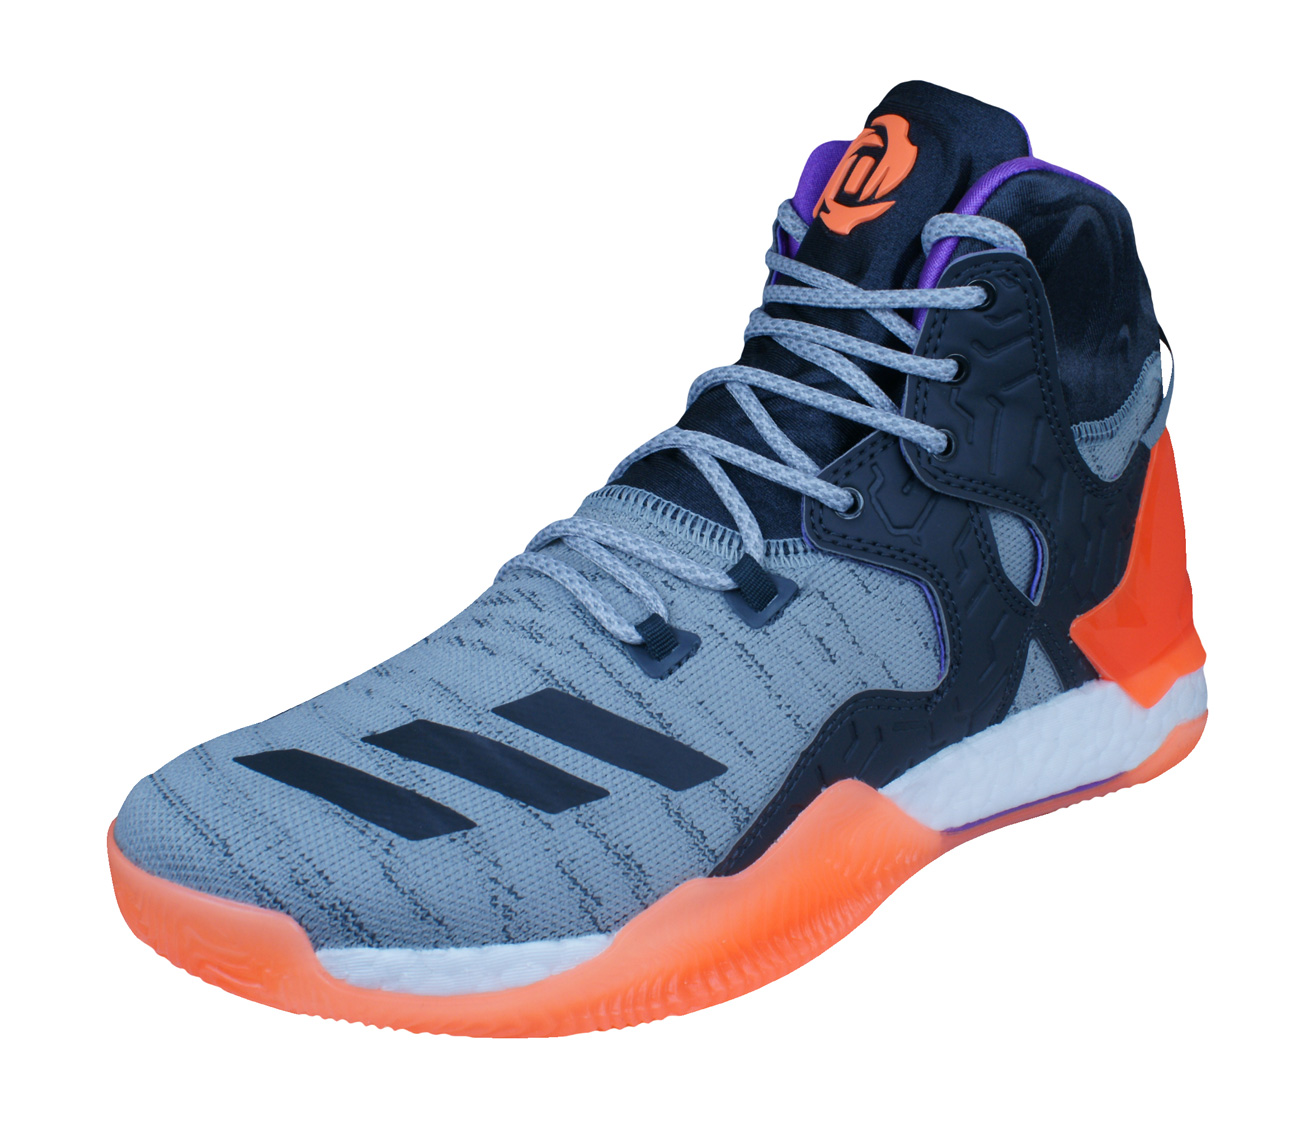 2f62855677ac adidas D Rose 7 Primeknit Mens Basketball Trainers   Shoes - Grey at ...